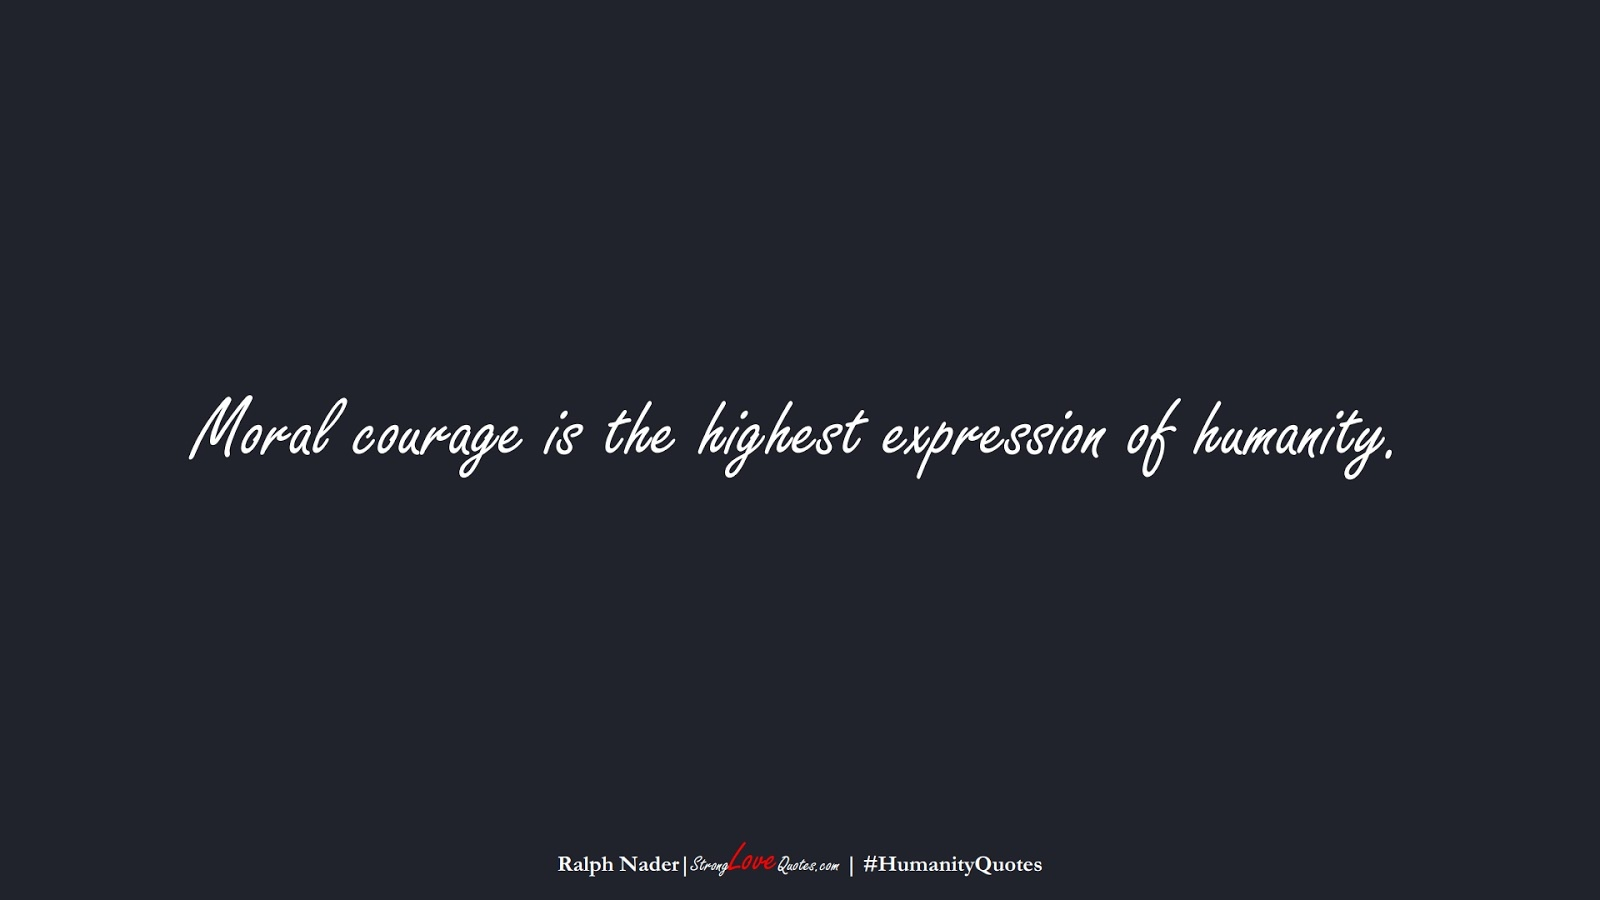 Moral courage is the highest expression of humanity. (Ralph Nader);  #HumanityQuotes